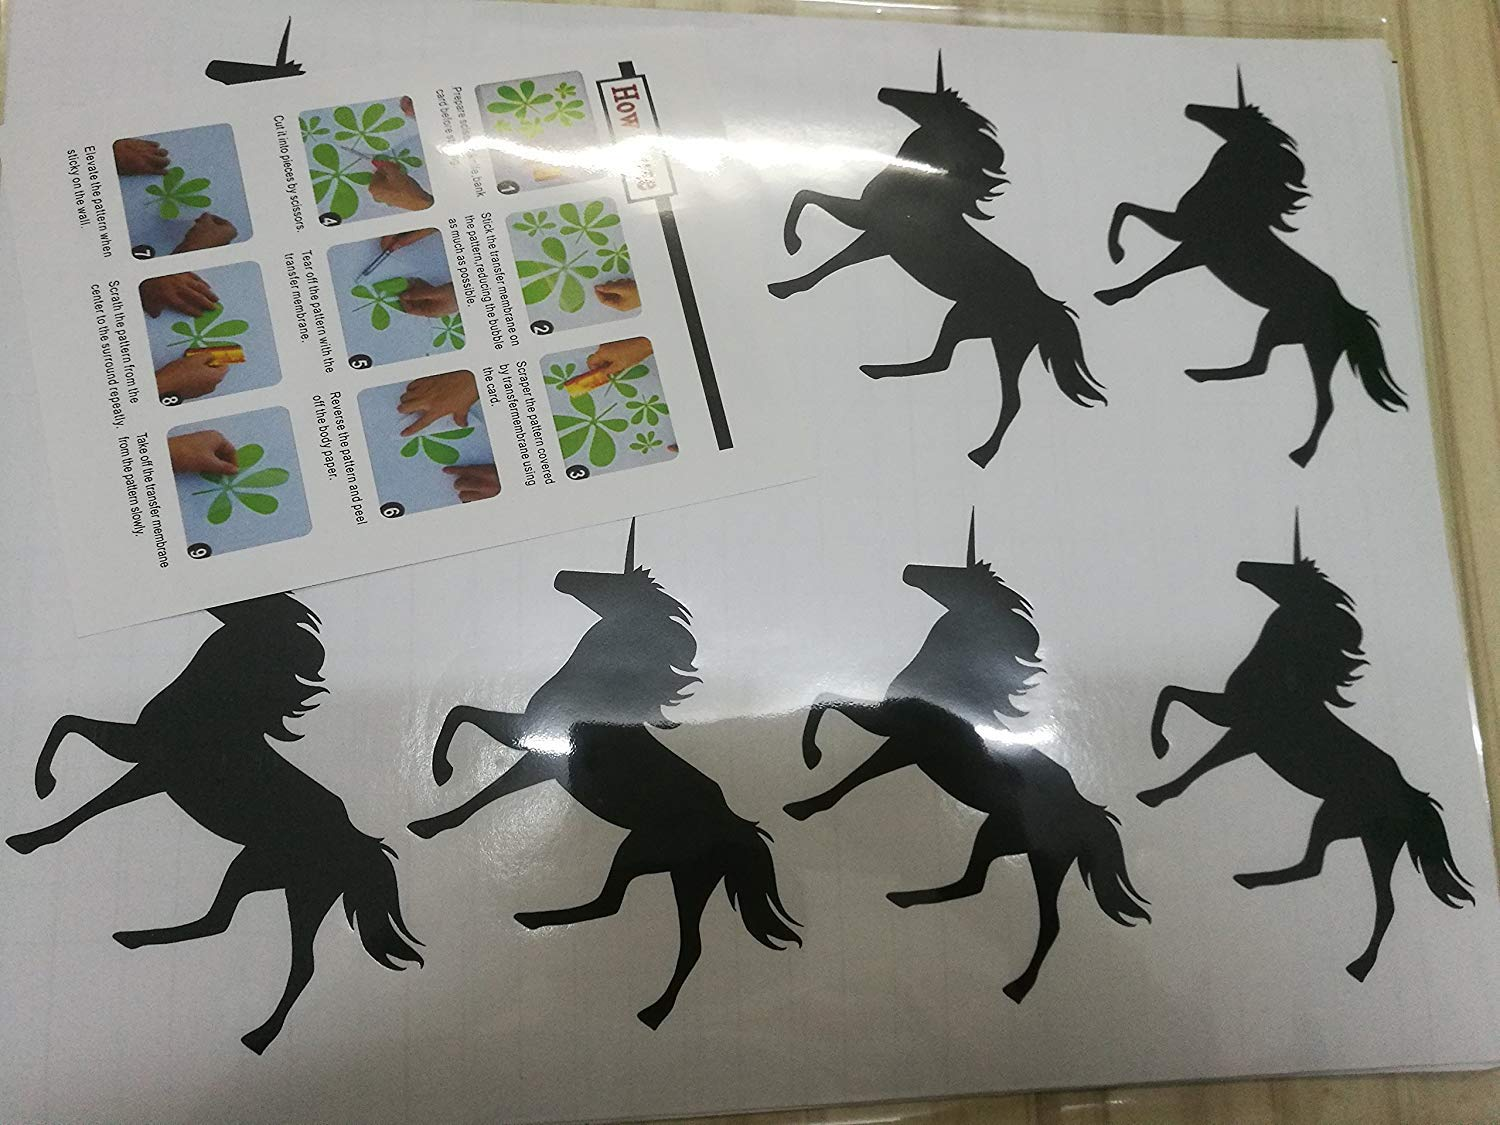 2.7 x 3.9 Each Silver HOMEE Unicorn Wall Stickers 20Pcs Wall Art Decals Home Decor Girls Sticker for Home Living Room Kids Room Nursery Bedroom Decor